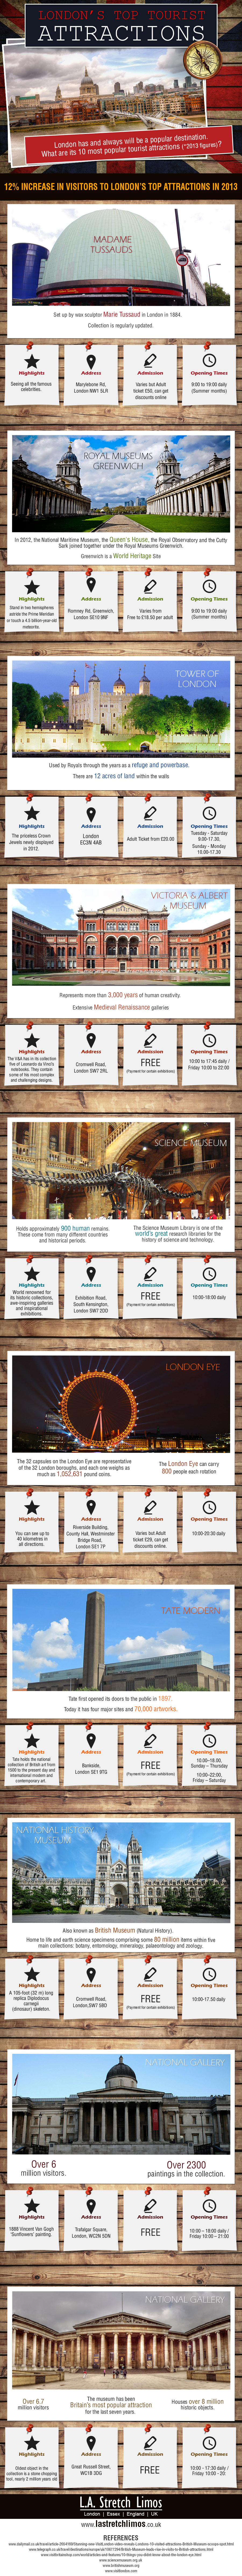 London's Most Popular Attractions